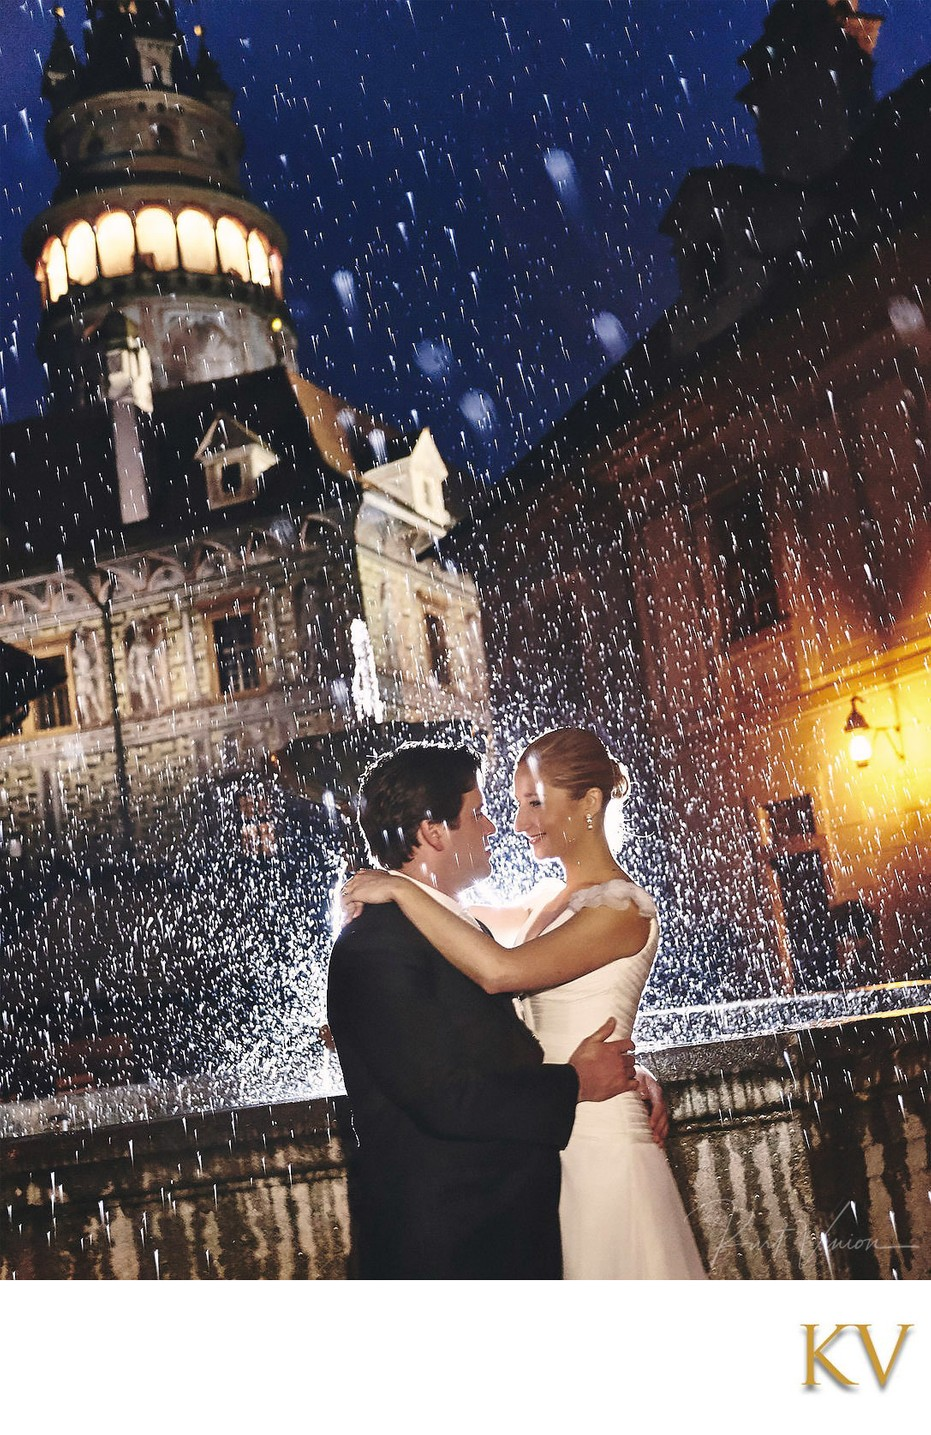 Cesky Krumlov Castle Best Wedding Picture 'in the rain'